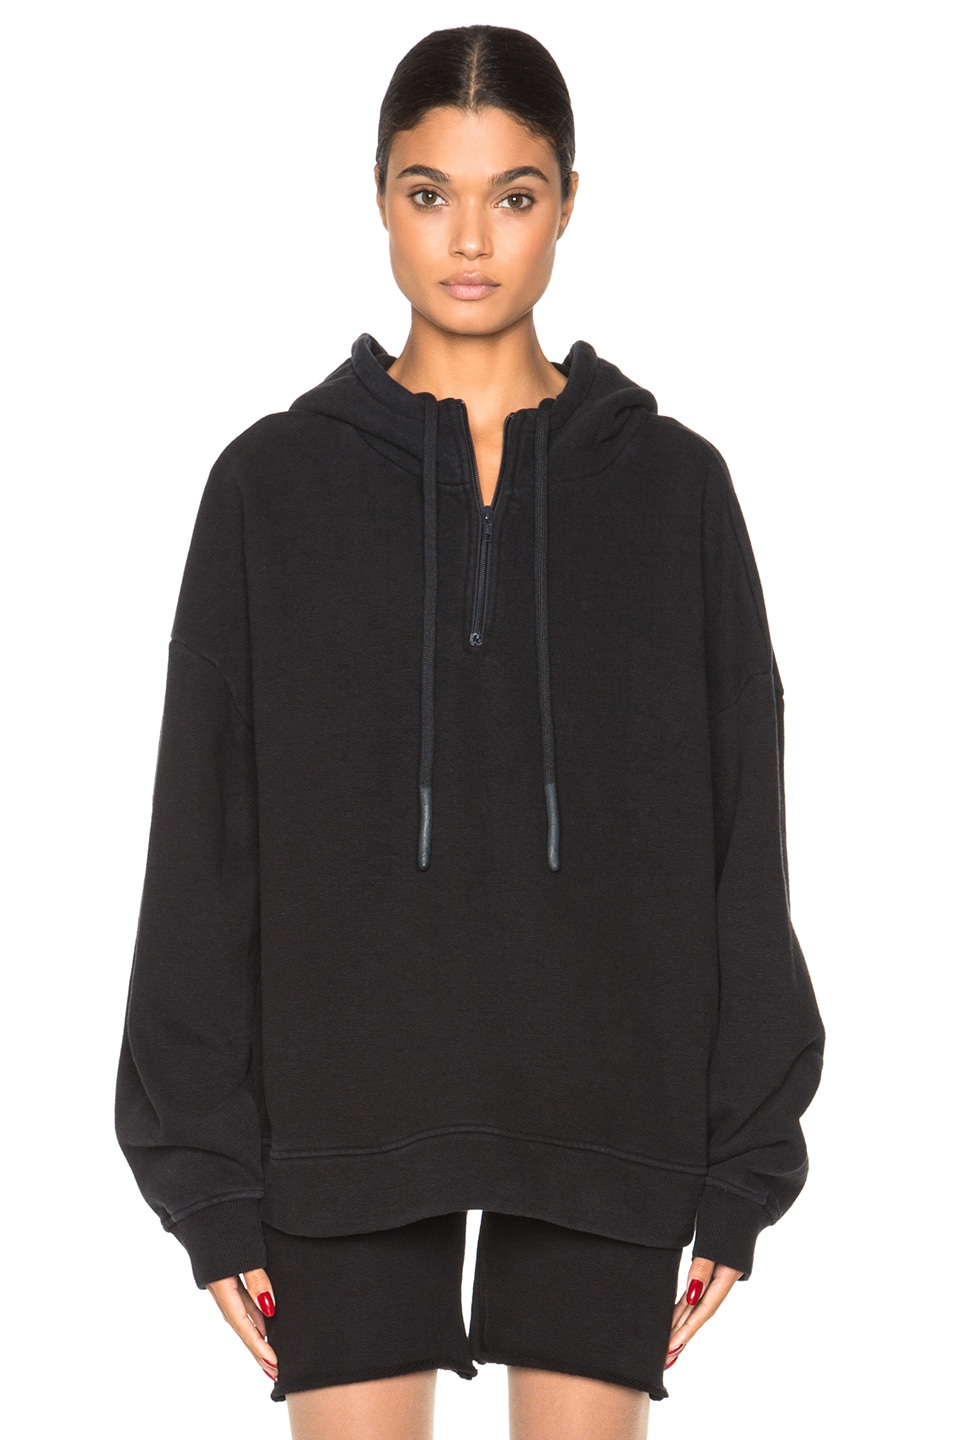 adidas x kanye west hoodie sweater tunic. Black Bedroom Furniture Sets. Home Design Ideas